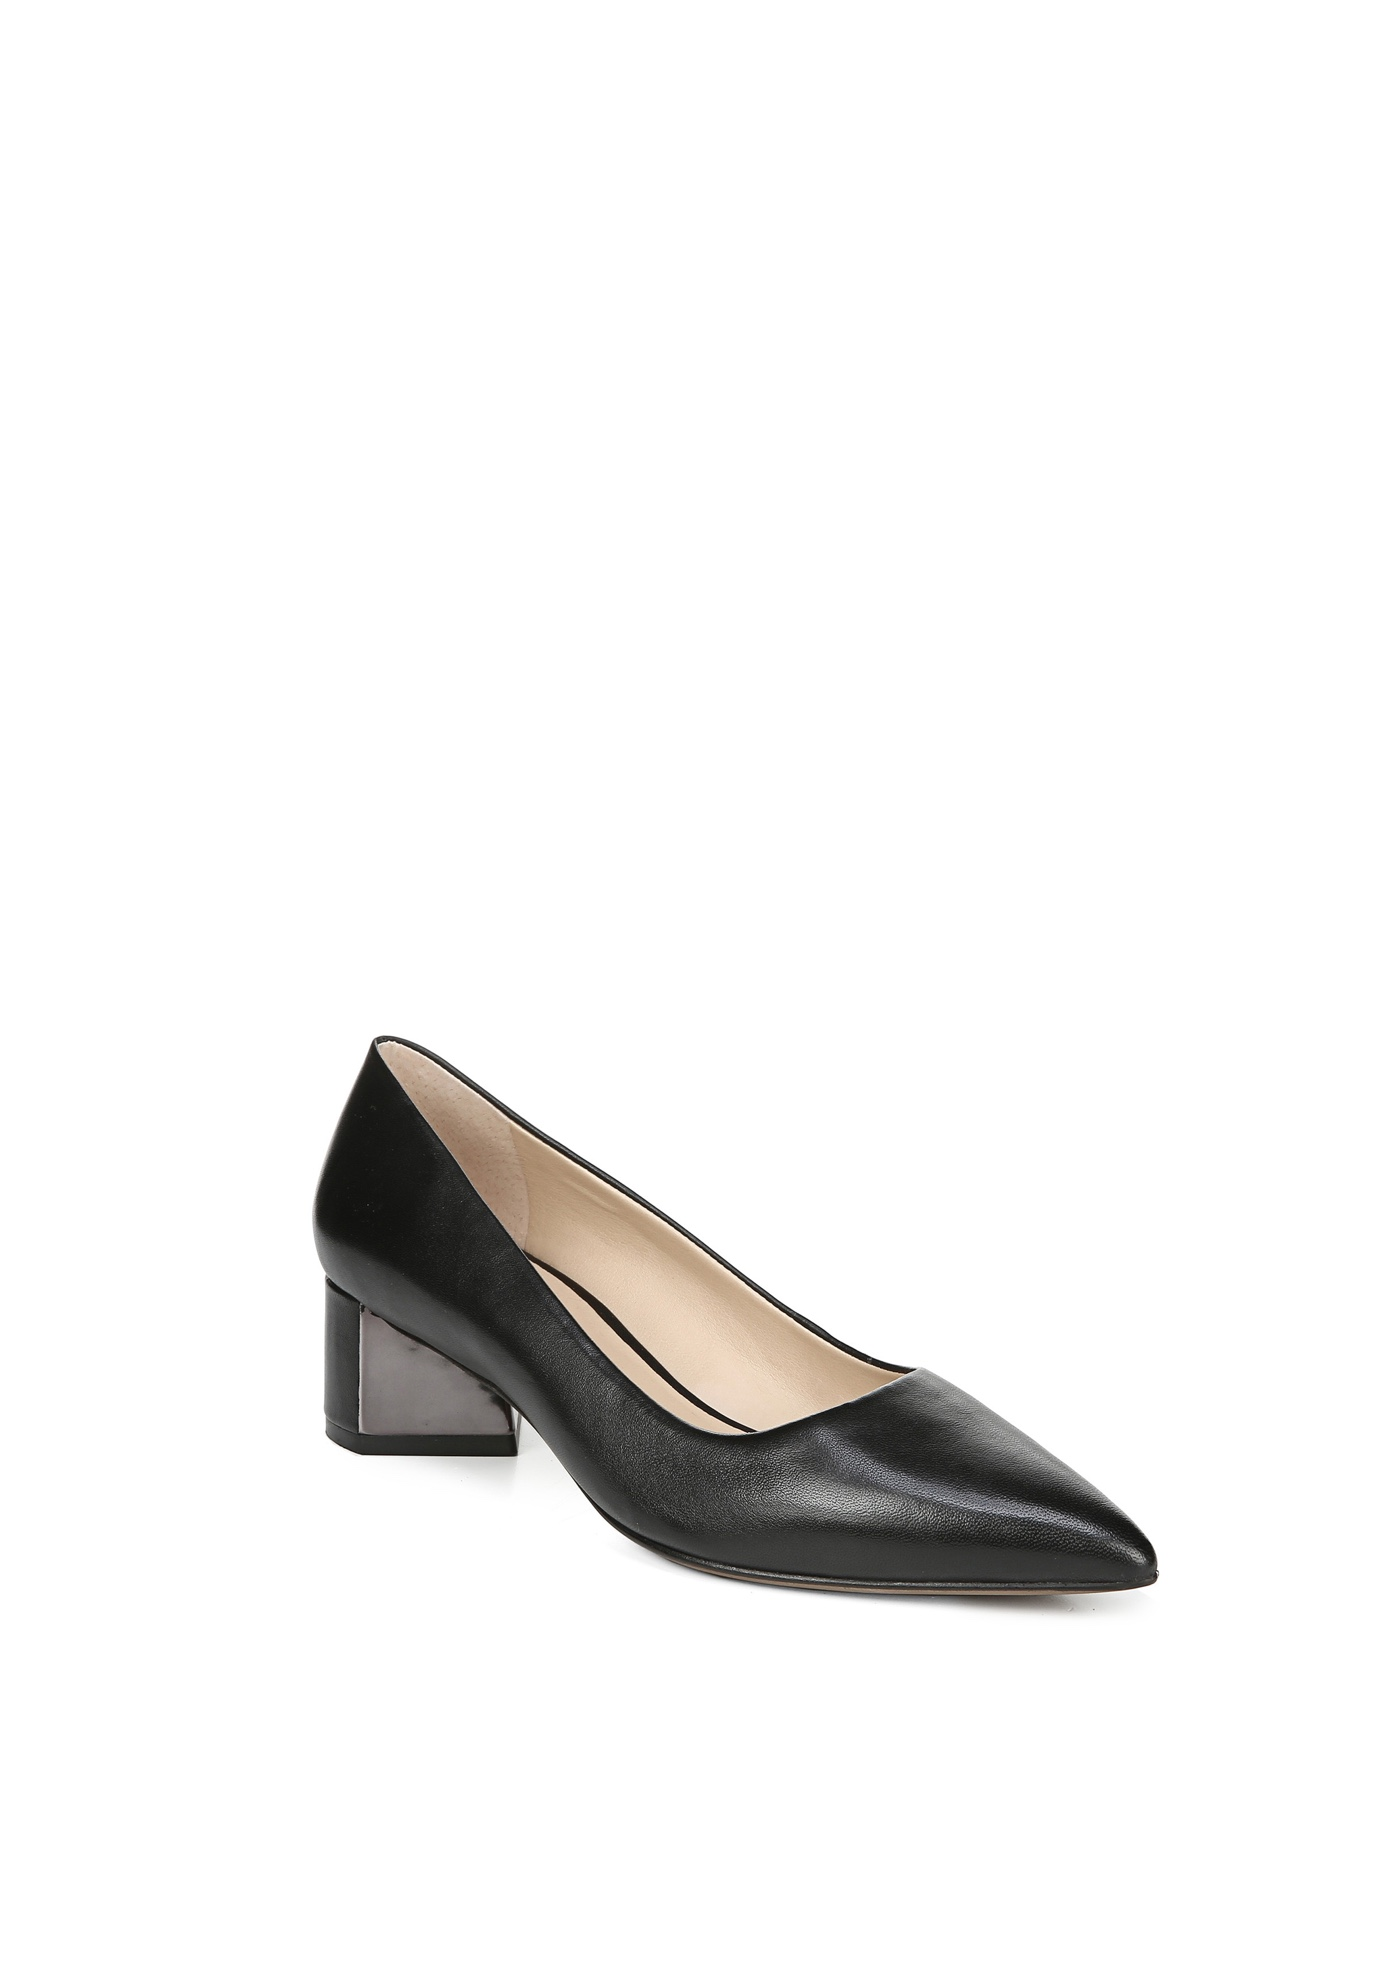 Global Pump by Franco Sarto,